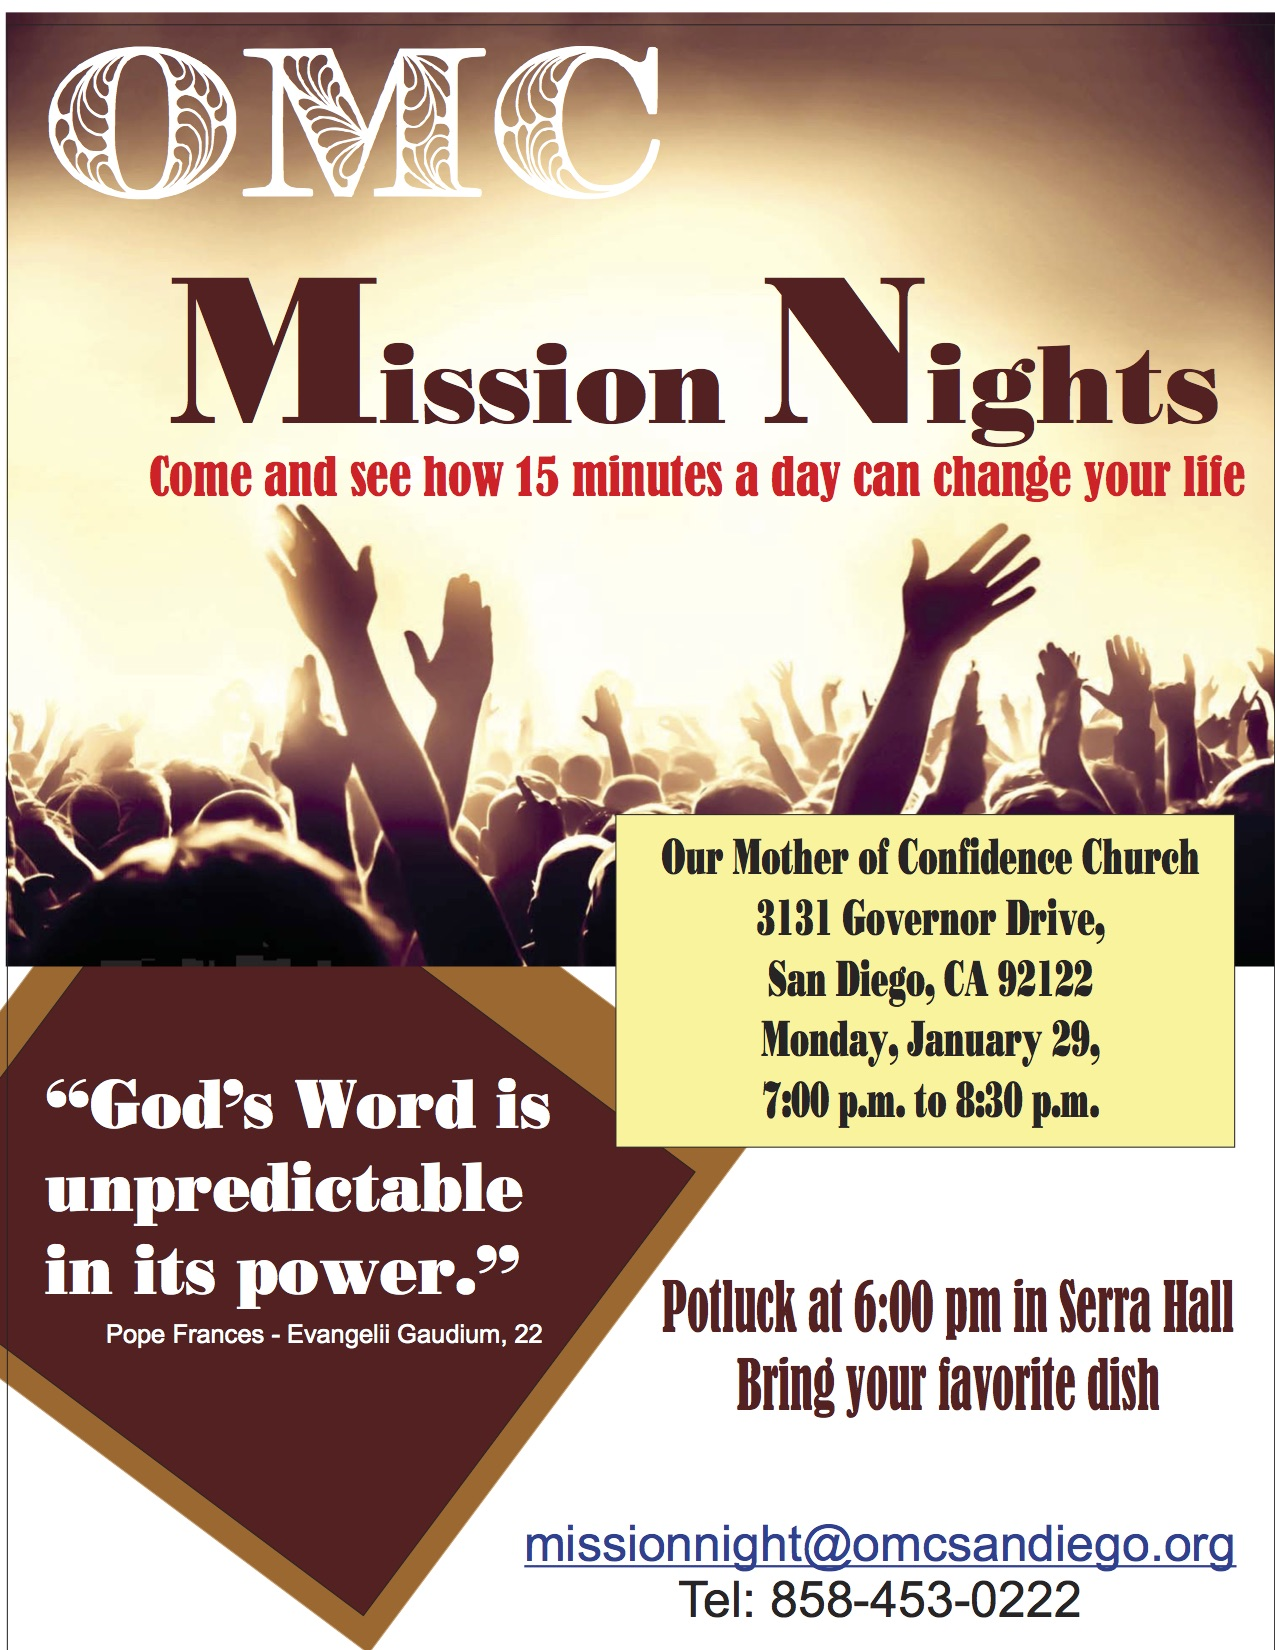 Mission Night I - 15 Minutes with God's Word